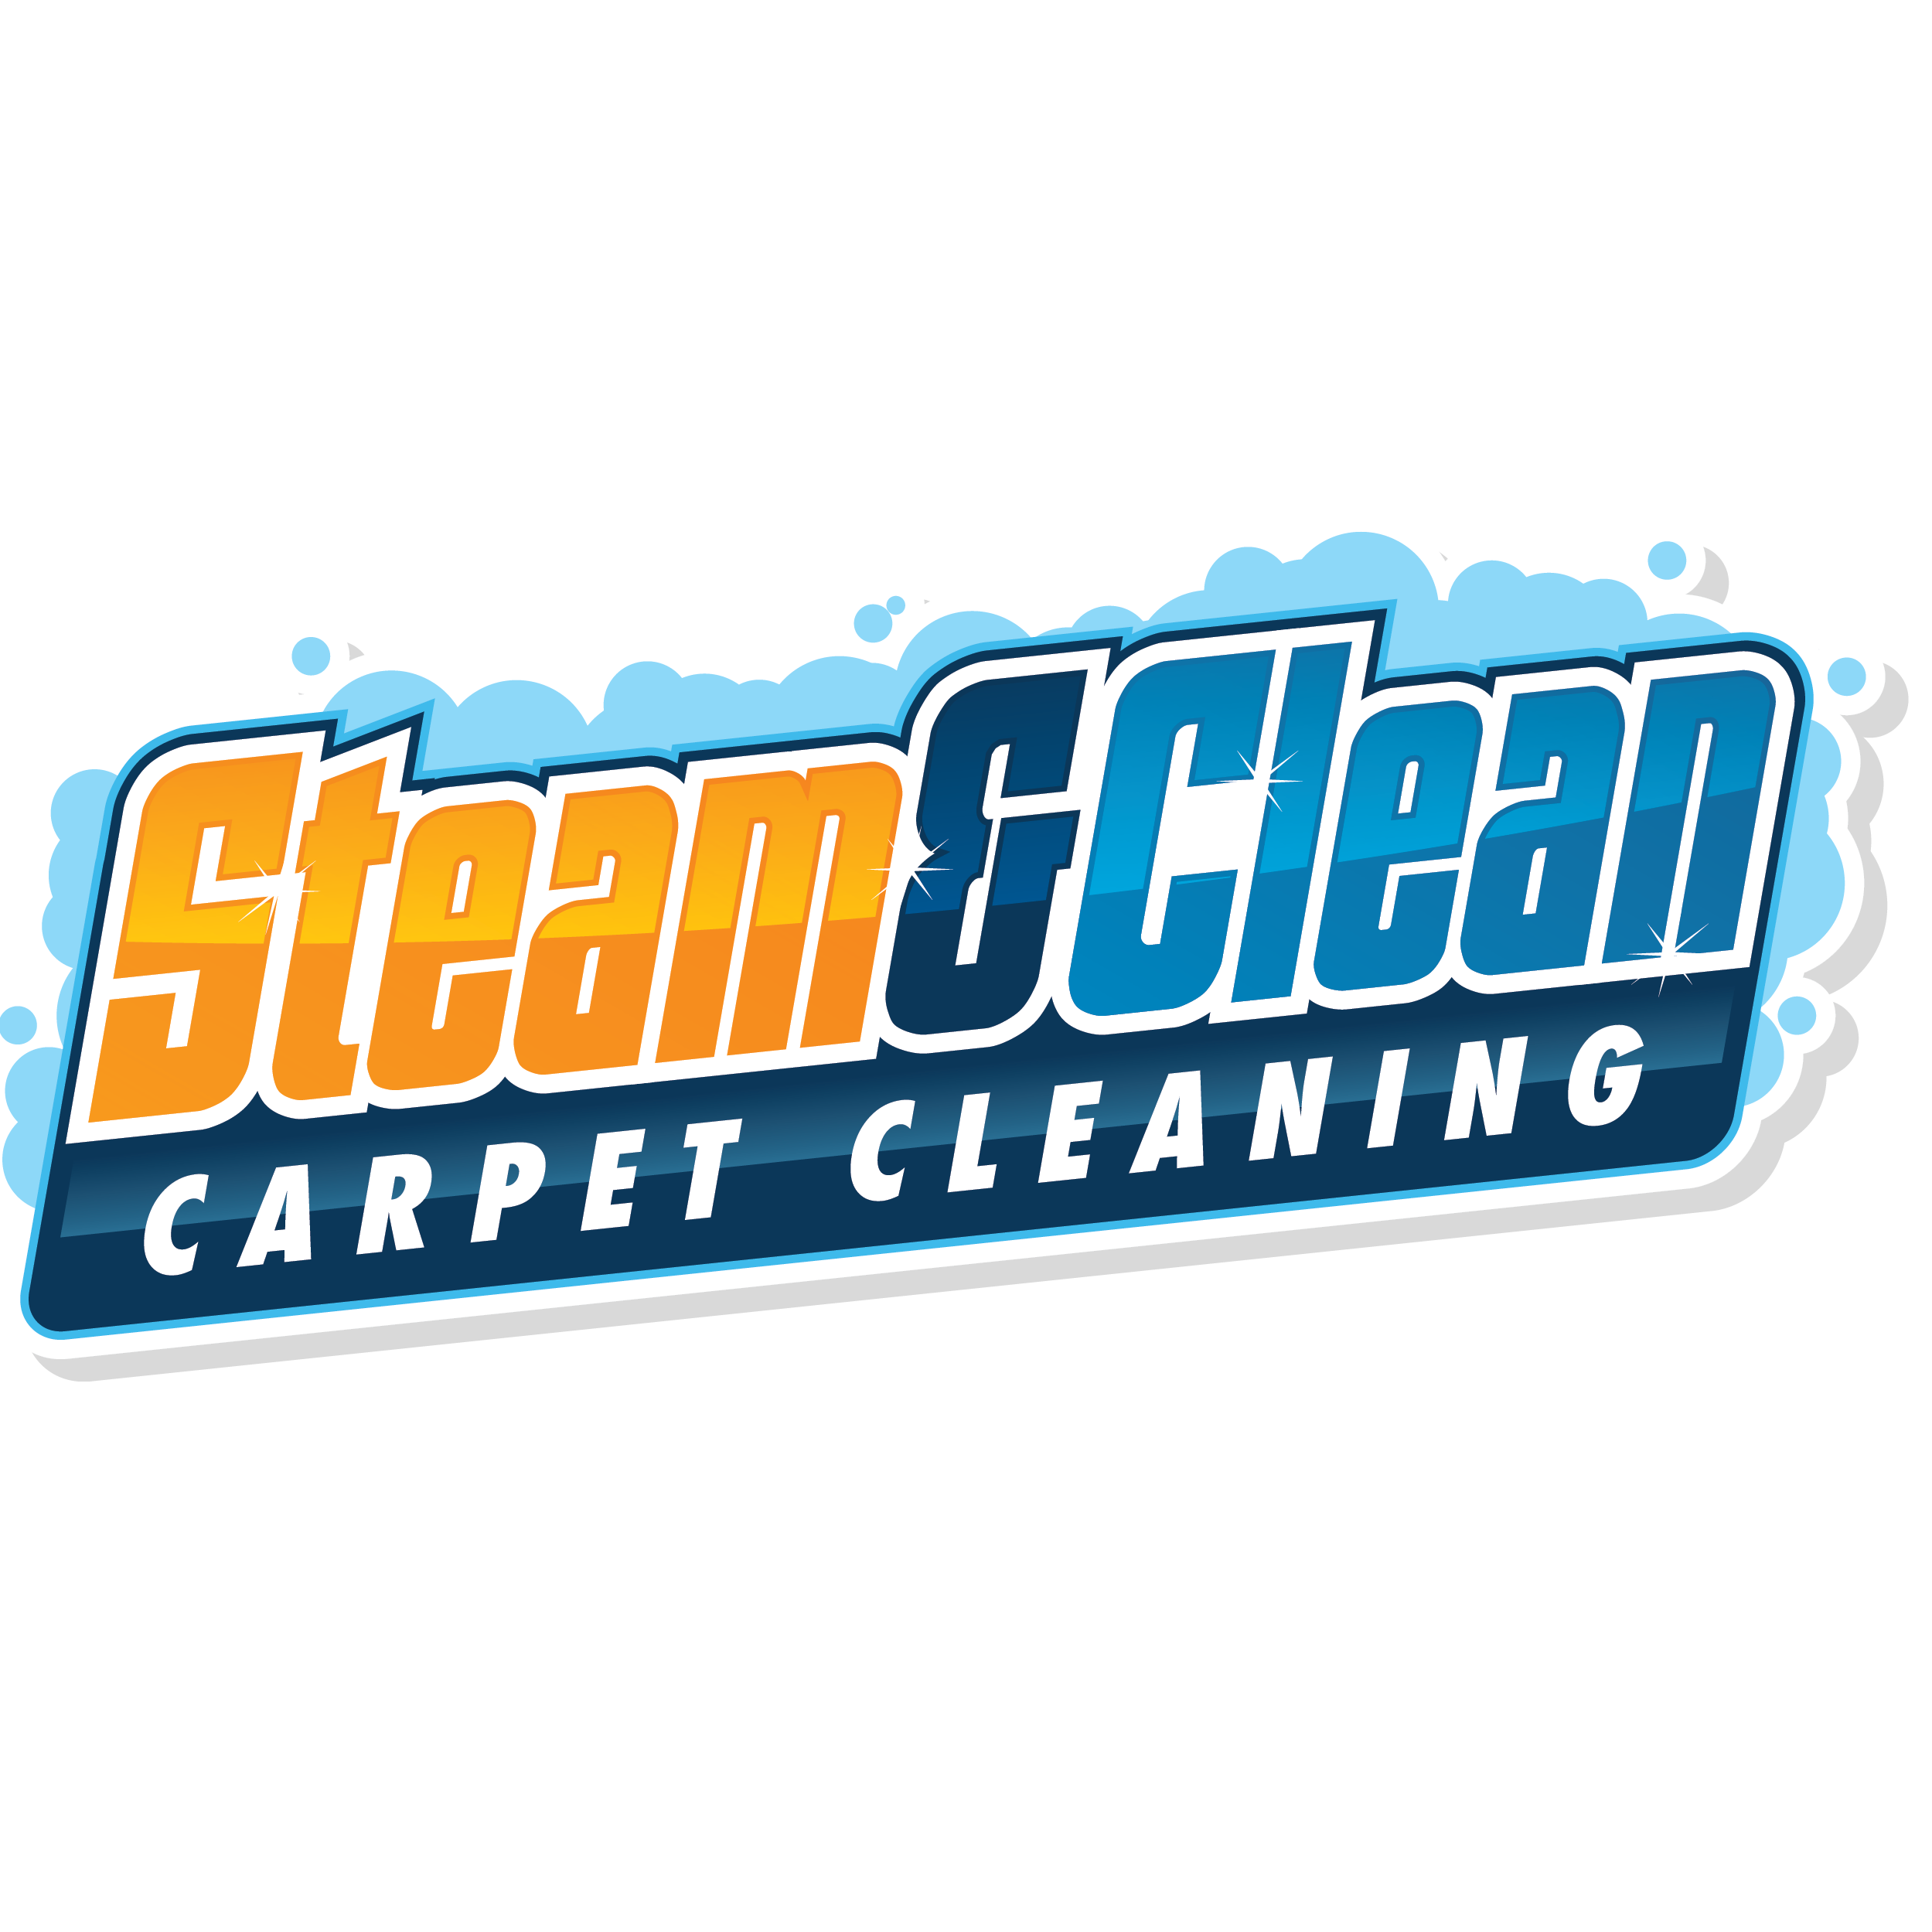 steam and clean carpet cleaning inc cordova tennessee tn. Black Bedroom Furniture Sets. Home Design Ideas